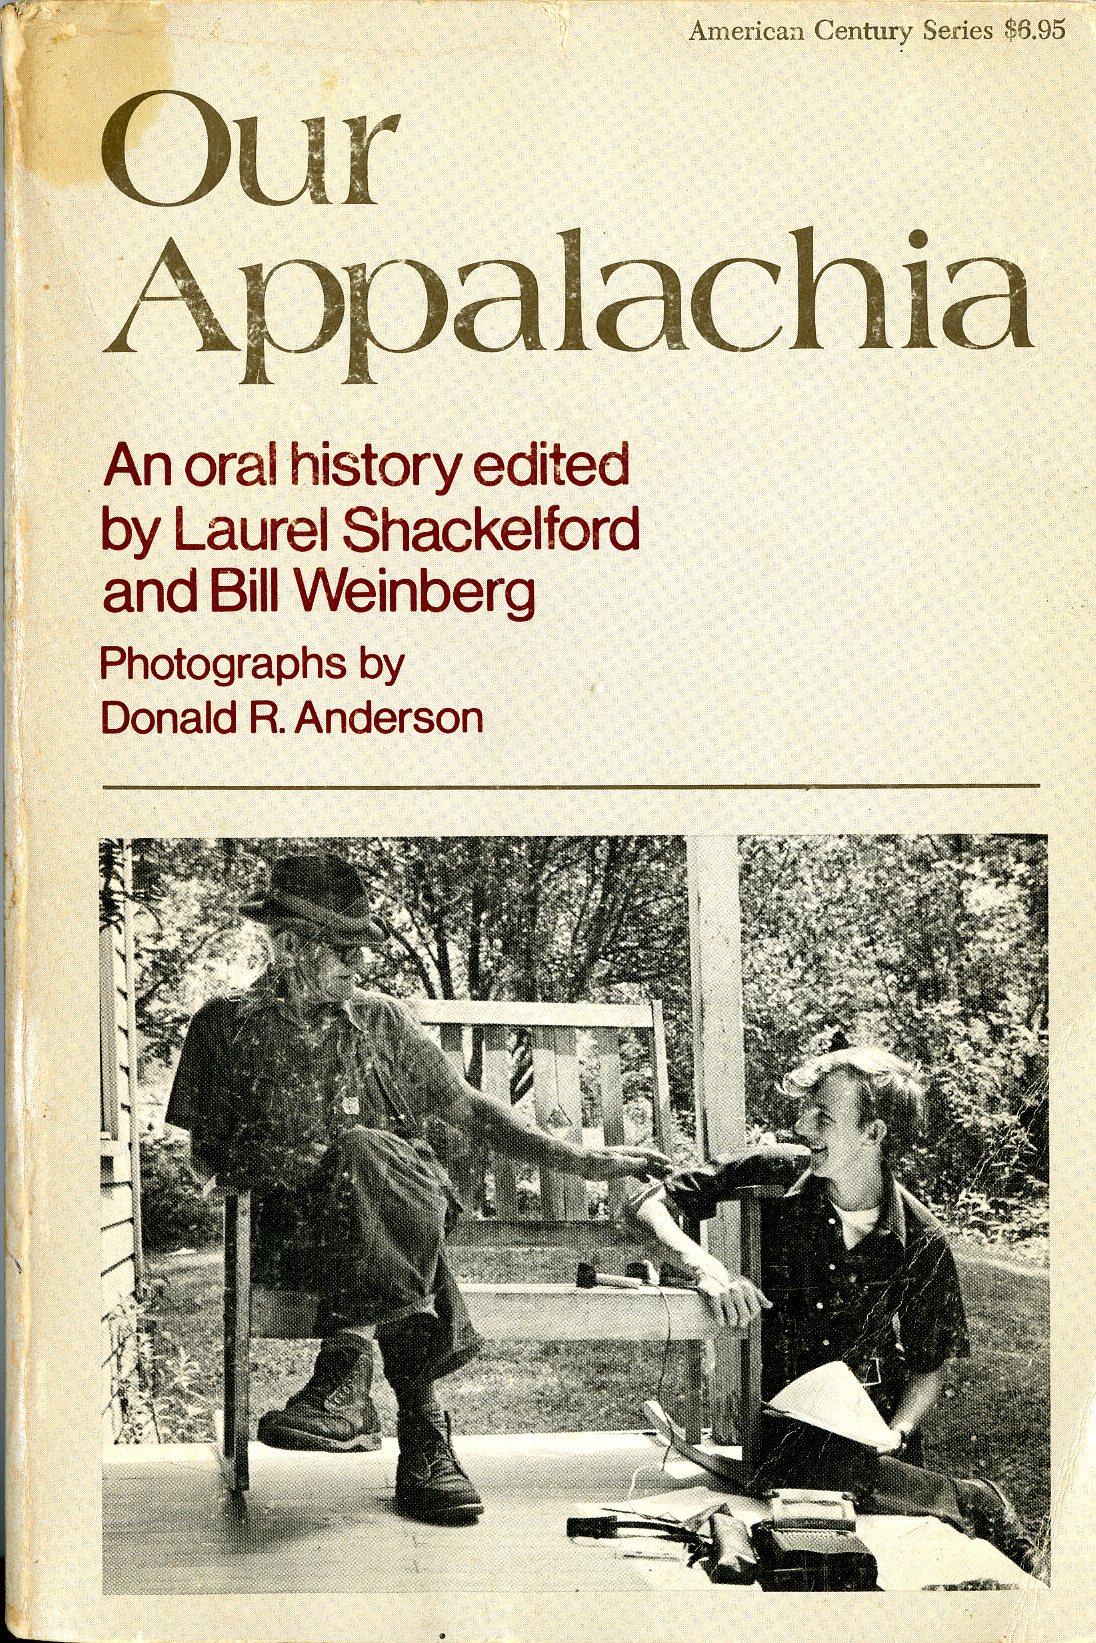 Our Appalachia : an oral history edited by Laurel Shackelford and Bill Weinberg. SFC Call no. F217.A65 O97 1977